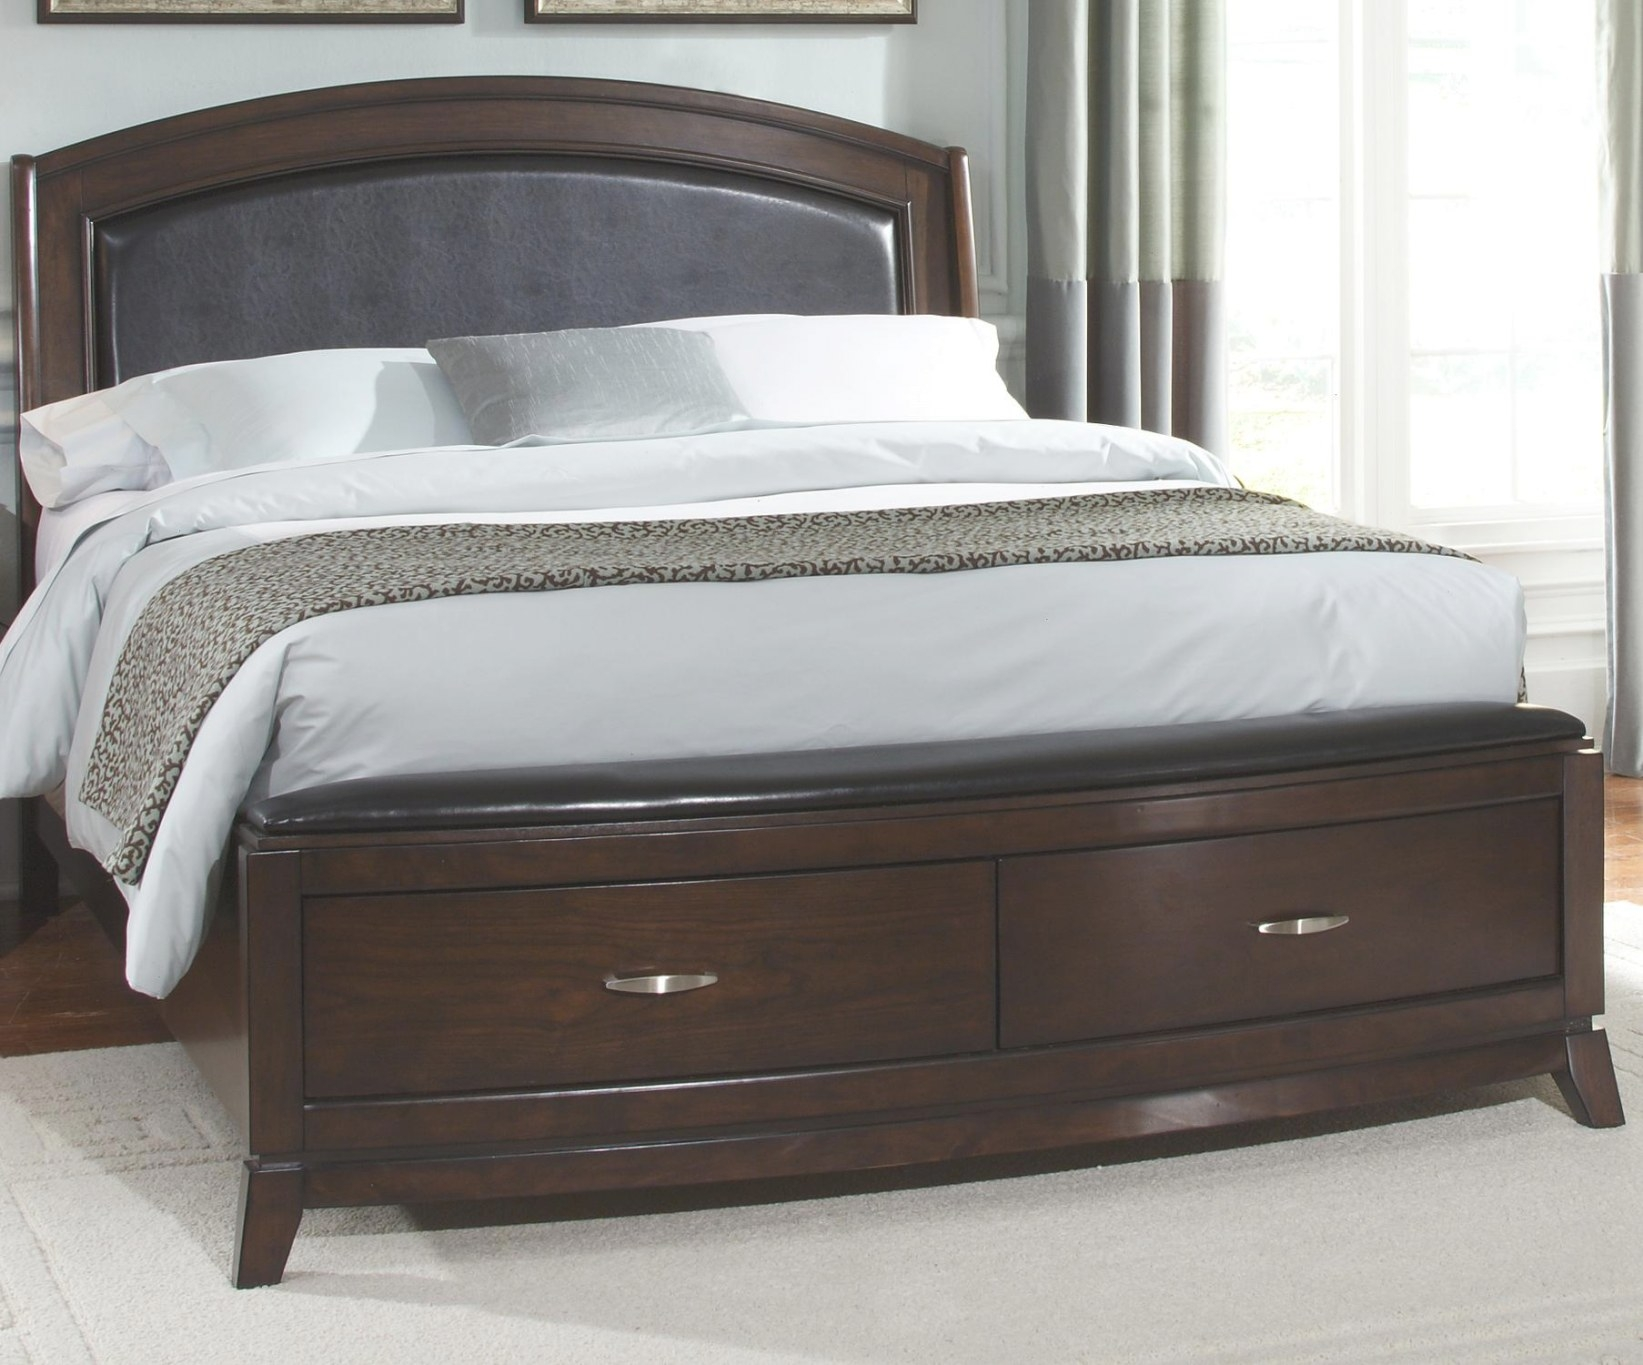 Liberty Furniture Avalon 505-Br-Qsb Queen Platform Leather in Queen Bed With Storage